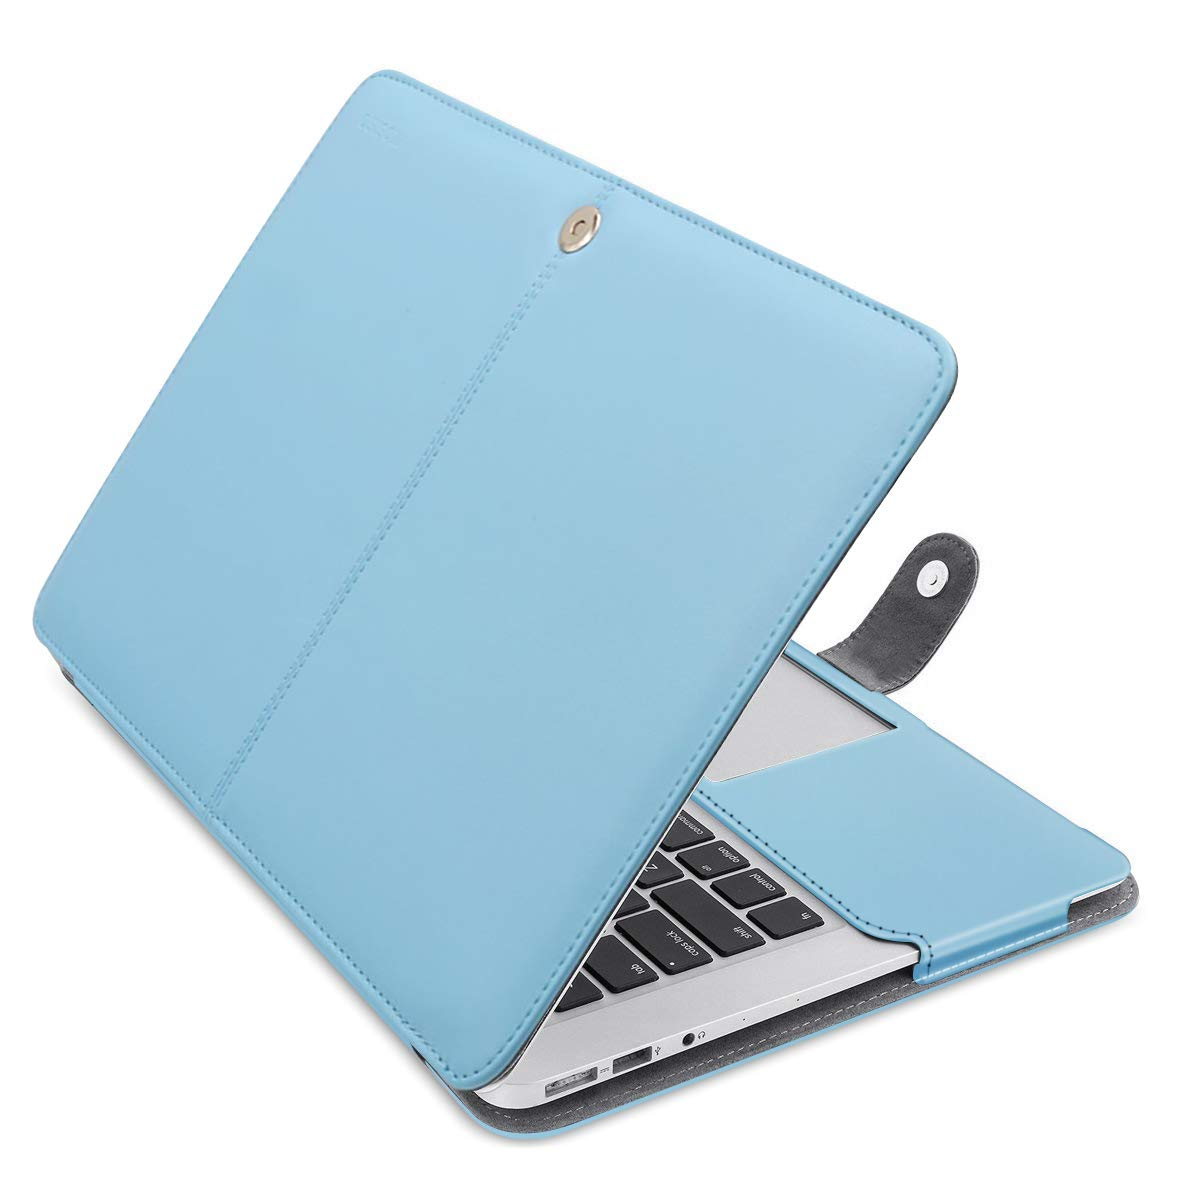 MOSISO MacBook Air 13 inch Case, Premium PU Leather Book Folio Protective Stand Cover Sleeve Compatible with MacBook Air 13 inch A1466 / A1369 (Older Version Release 2010-2017), Airy Blue